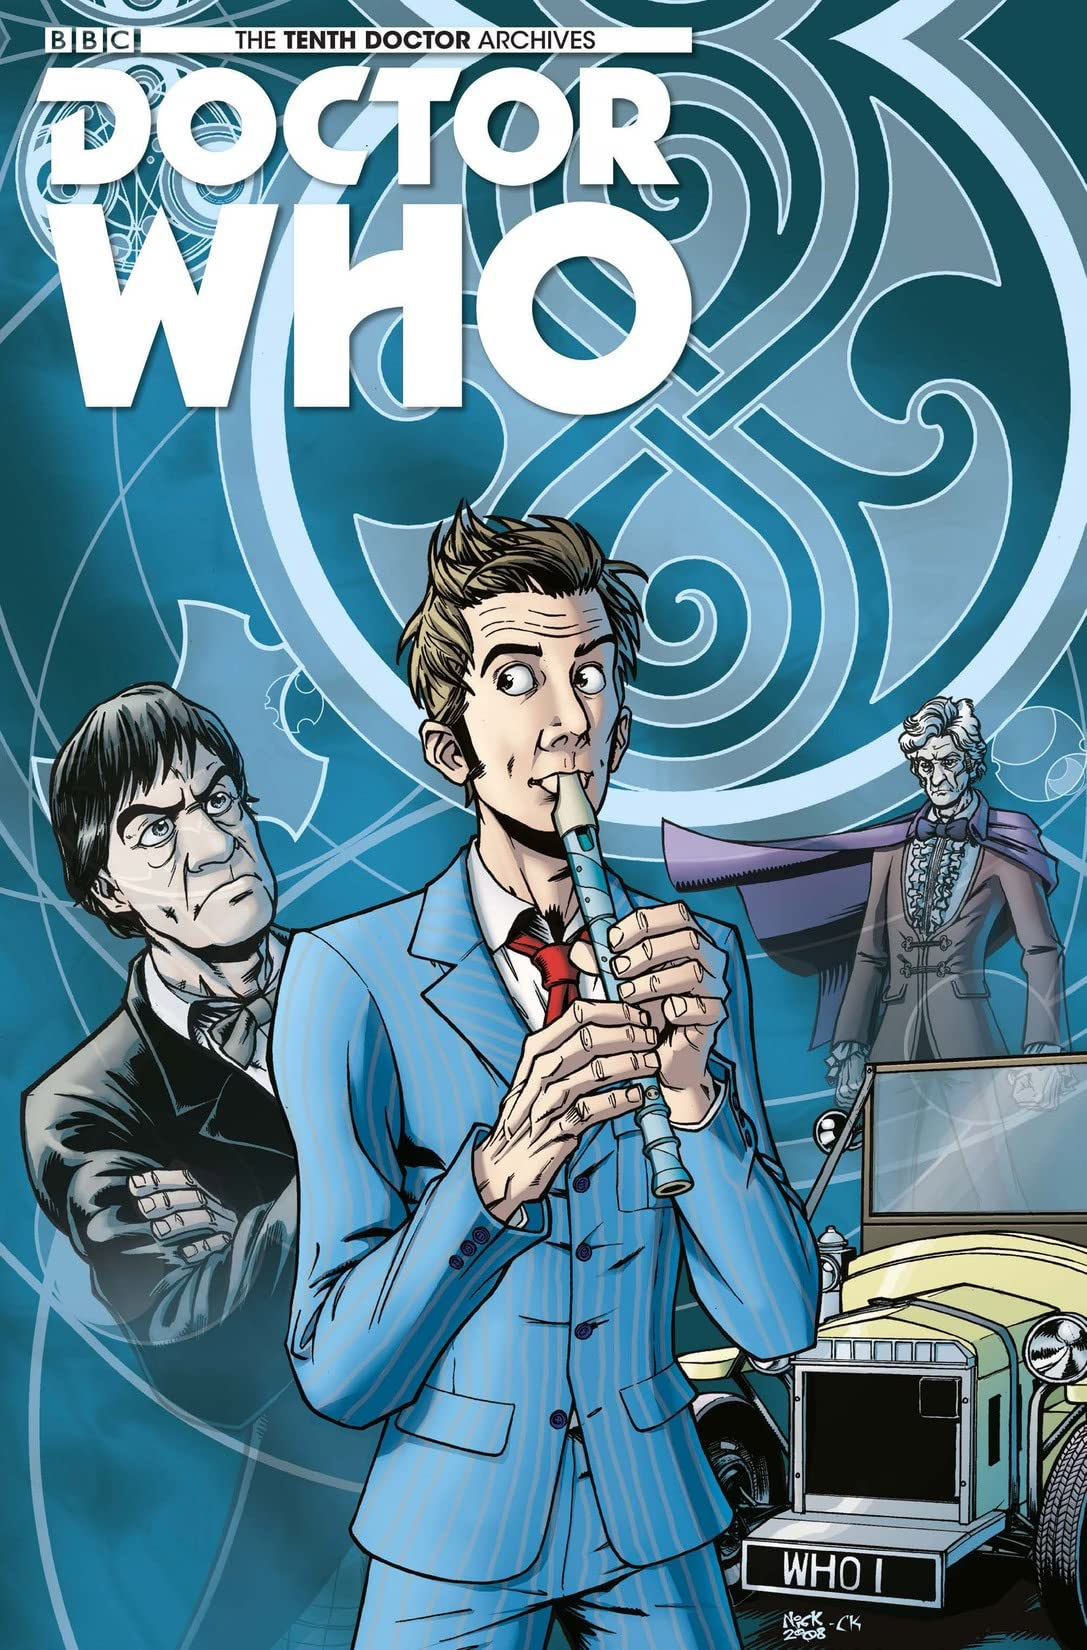 Doctor Who: The Tenth Doctor Archives #8